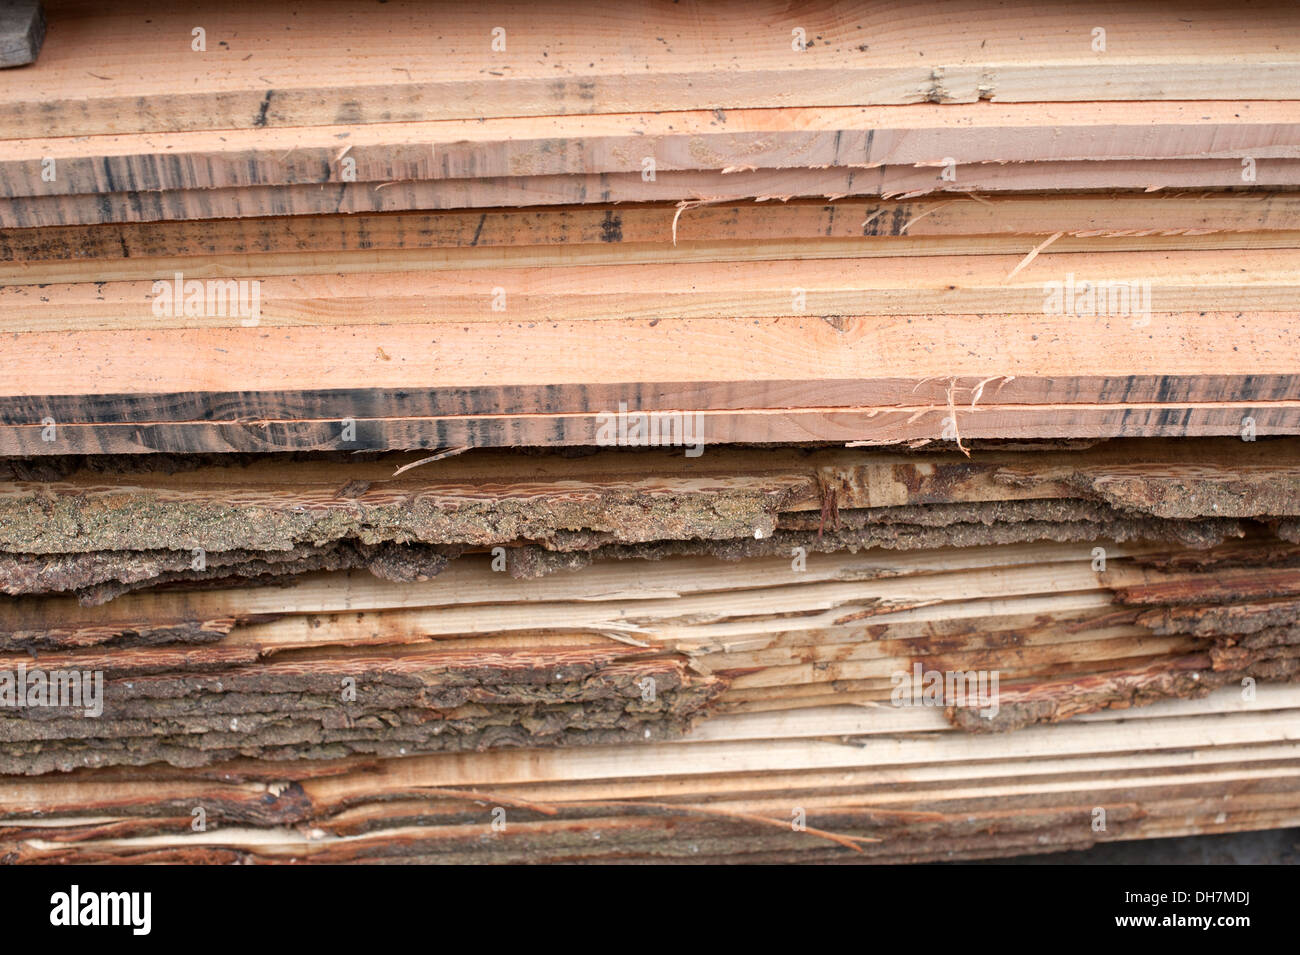 New Planks of wood cut from tree trunk Fresh rough - Stock Image